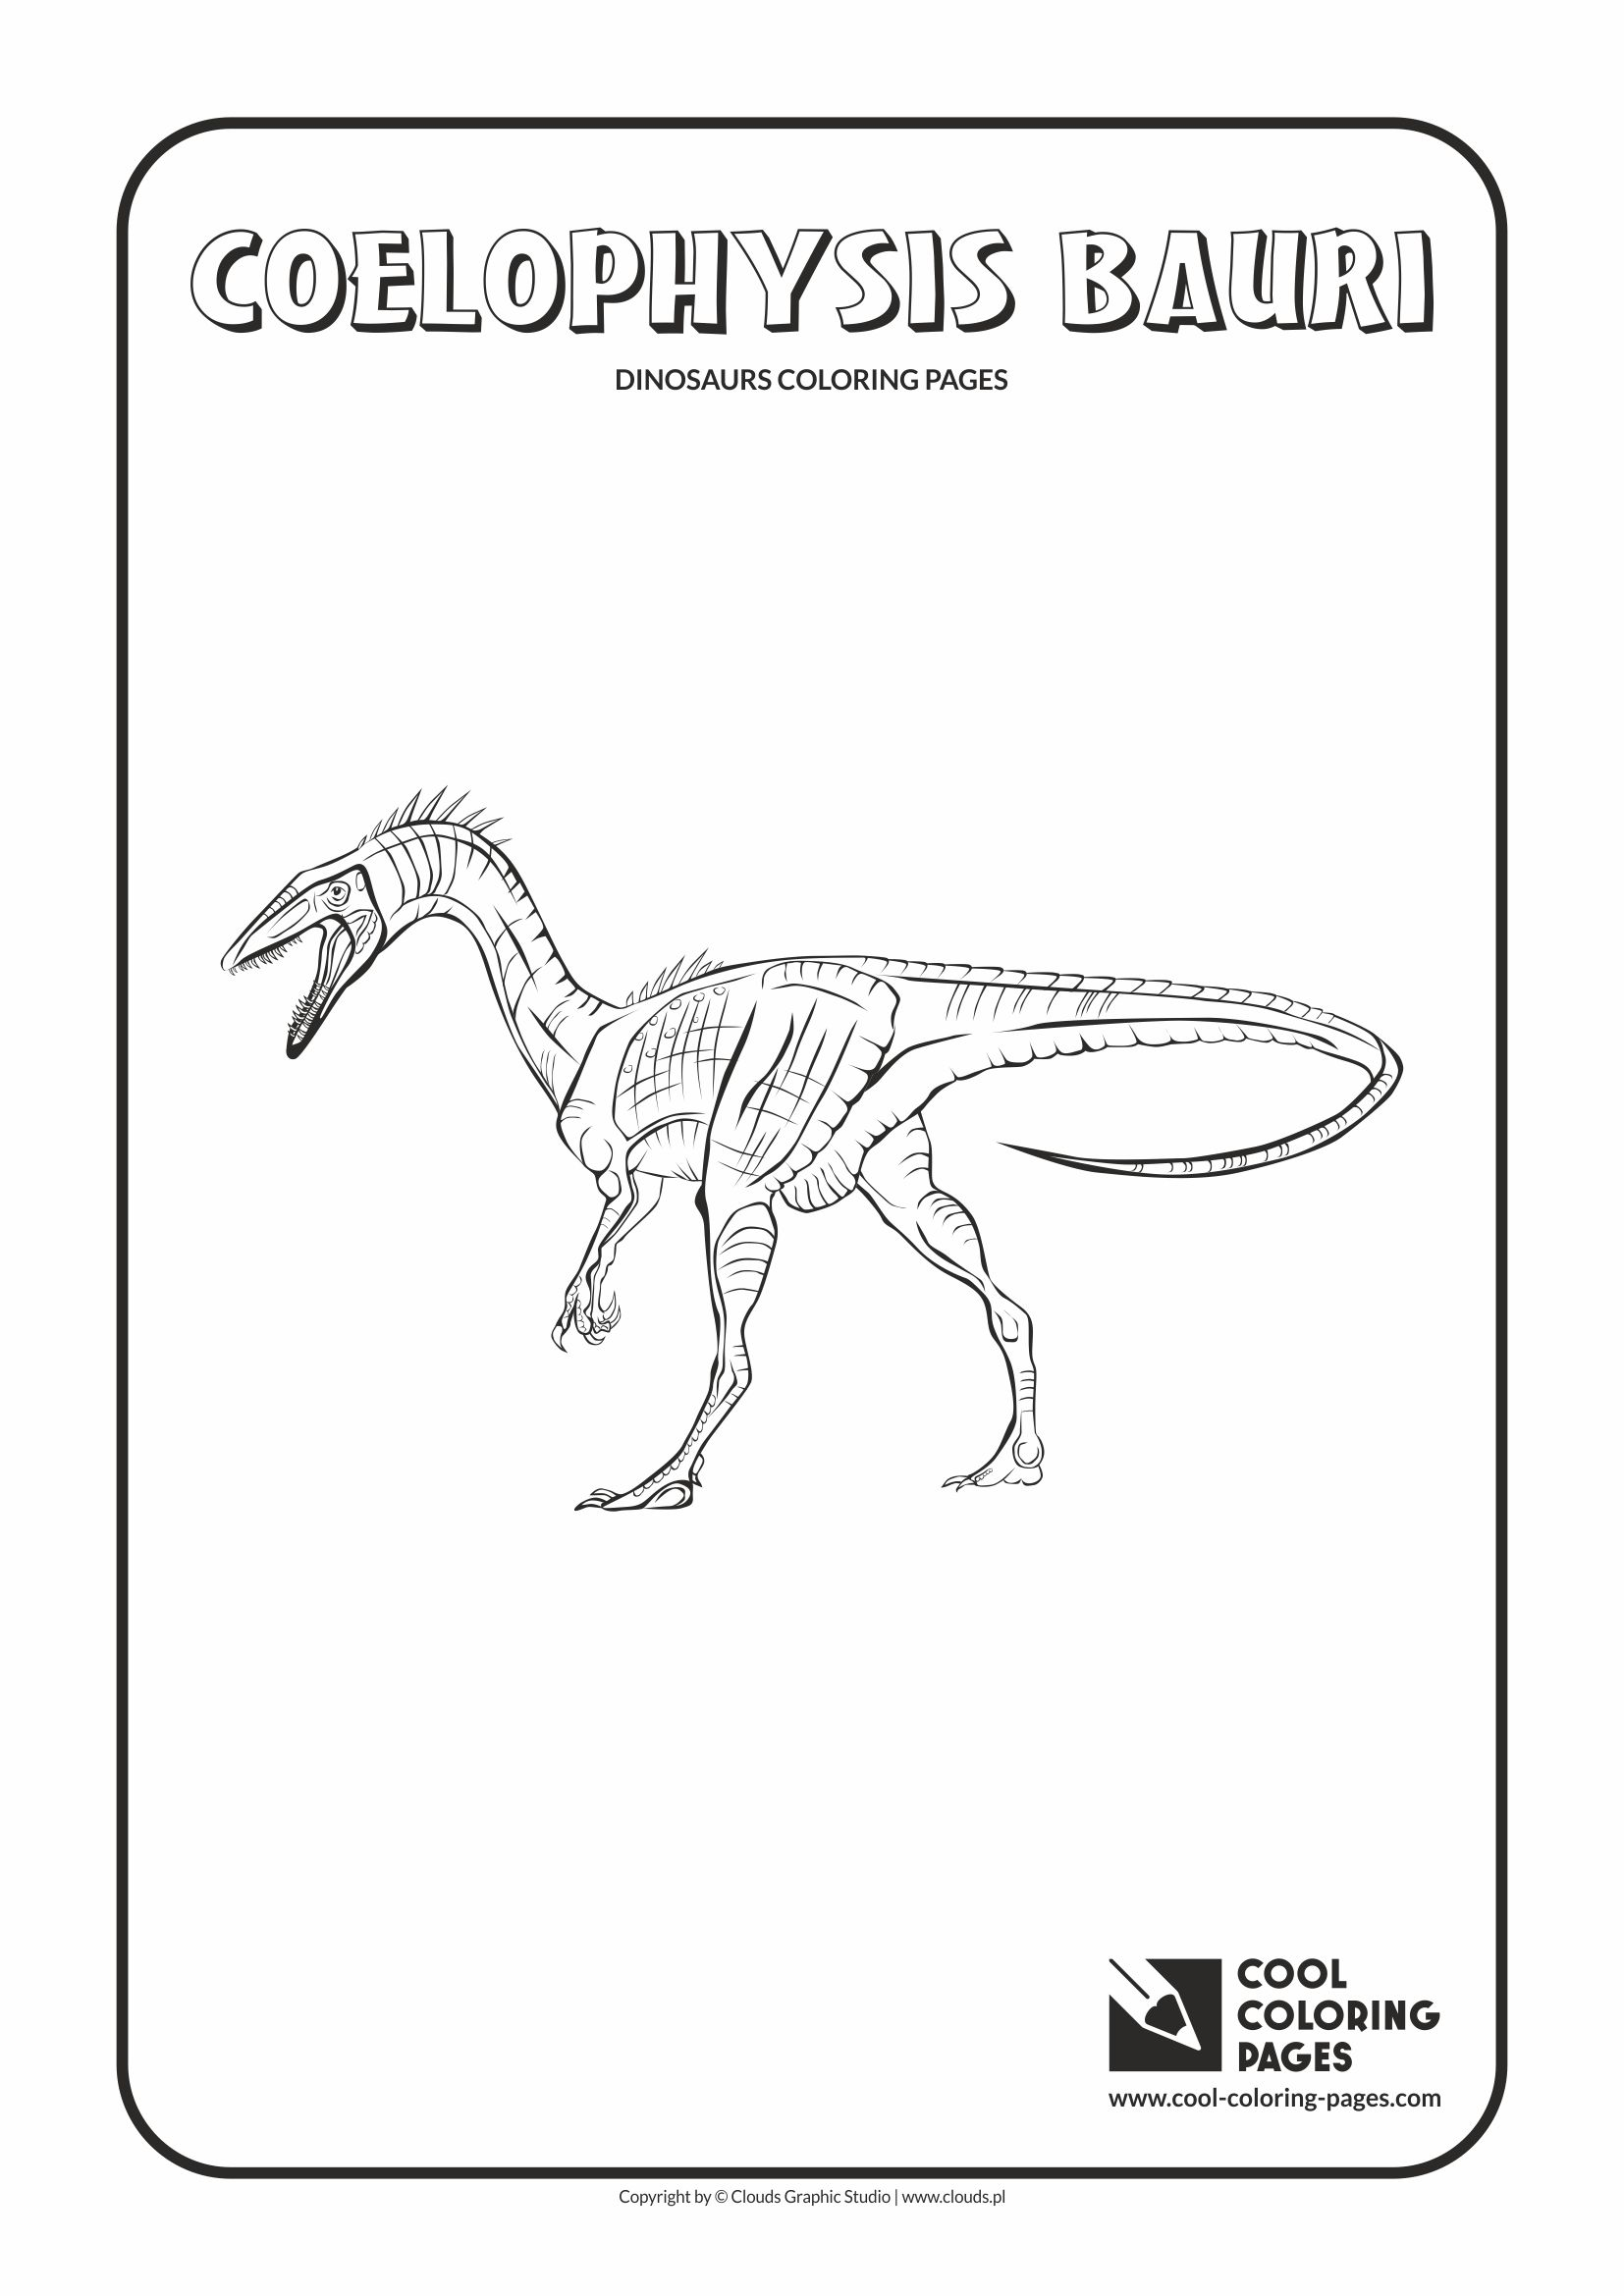 coelophysis bauri coloring page cool coloring pages